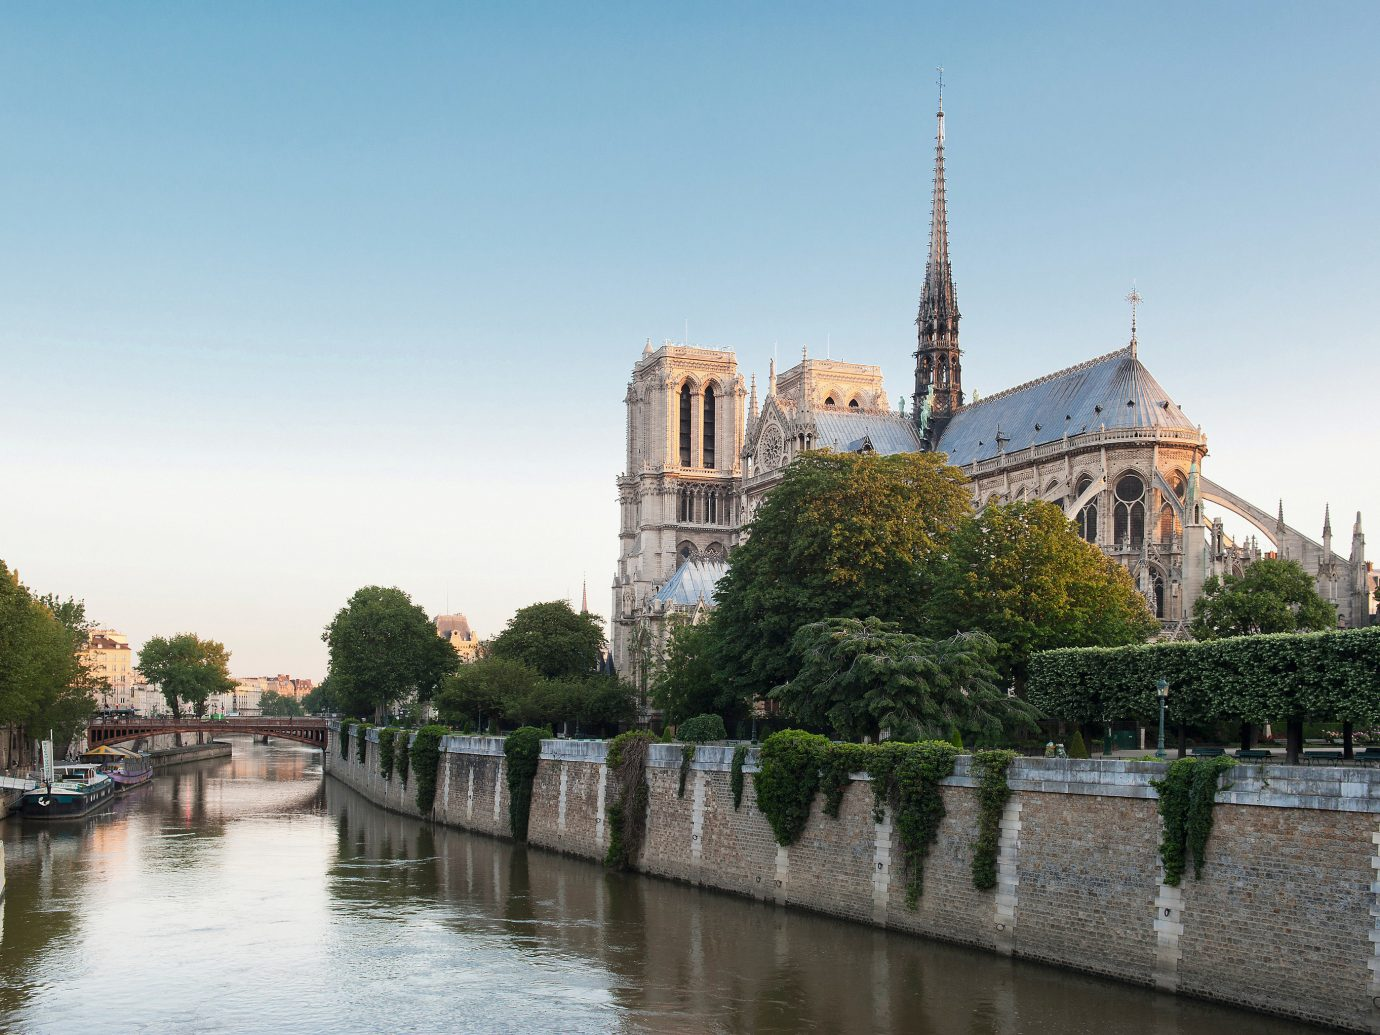 Hotels Jetsetter Guides Trip Ideas outdoor water sky tree River landmark waterway tourism Canal cityscape château palace Lake tours reflection place of worship travel moat traveling surrounded day